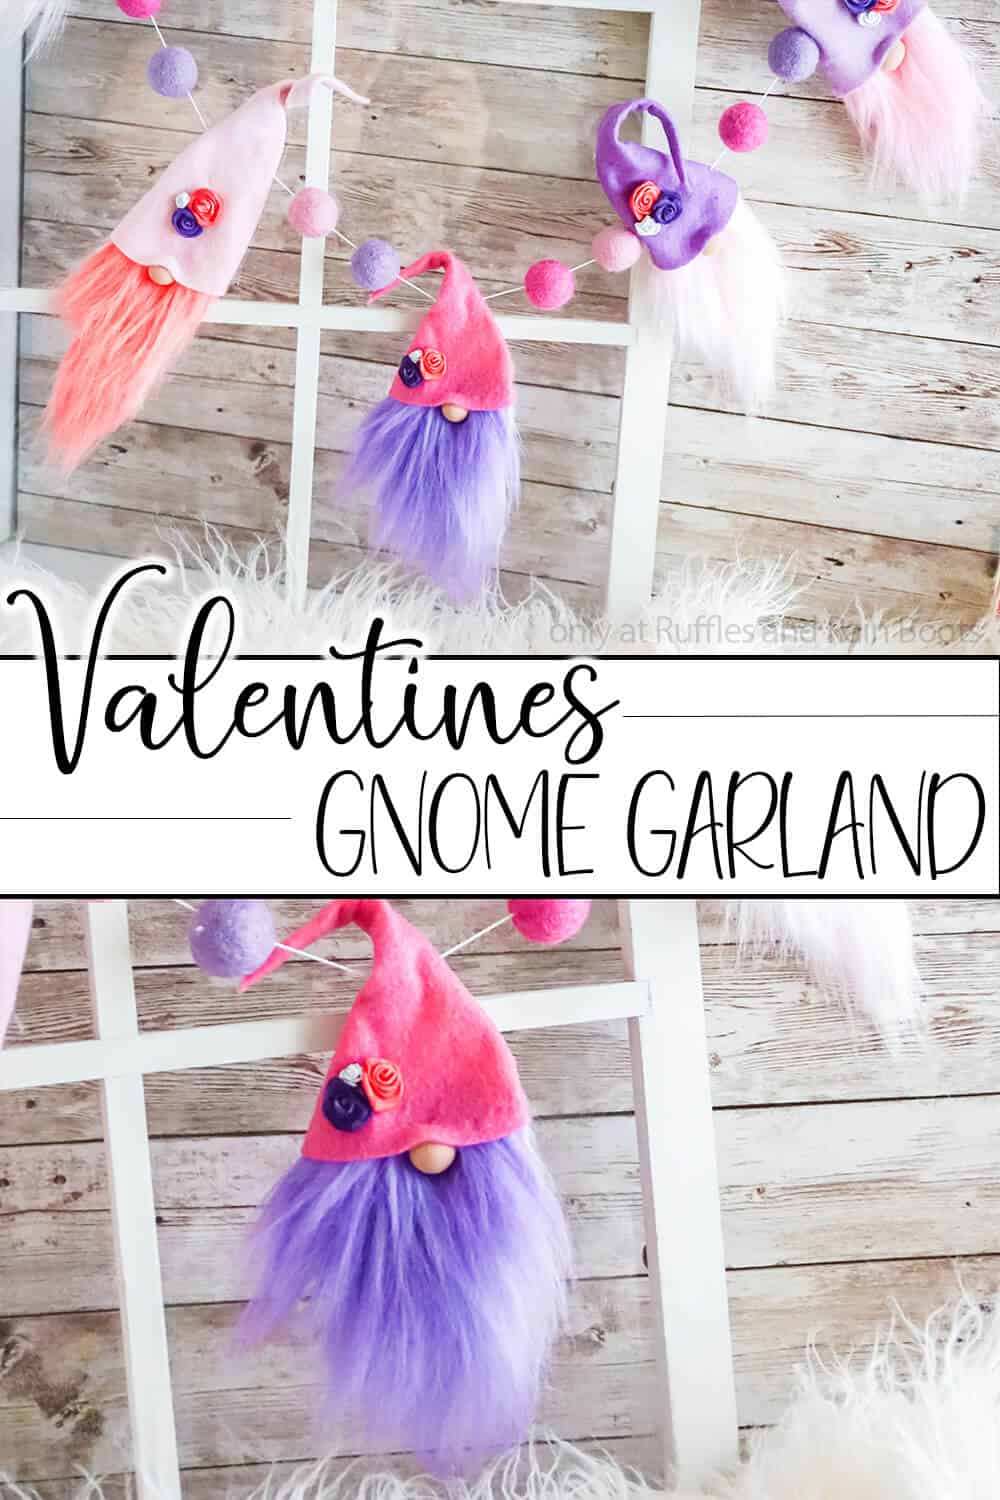 photo collage of diy garland with gnomes with text which reads valentine gnome garland